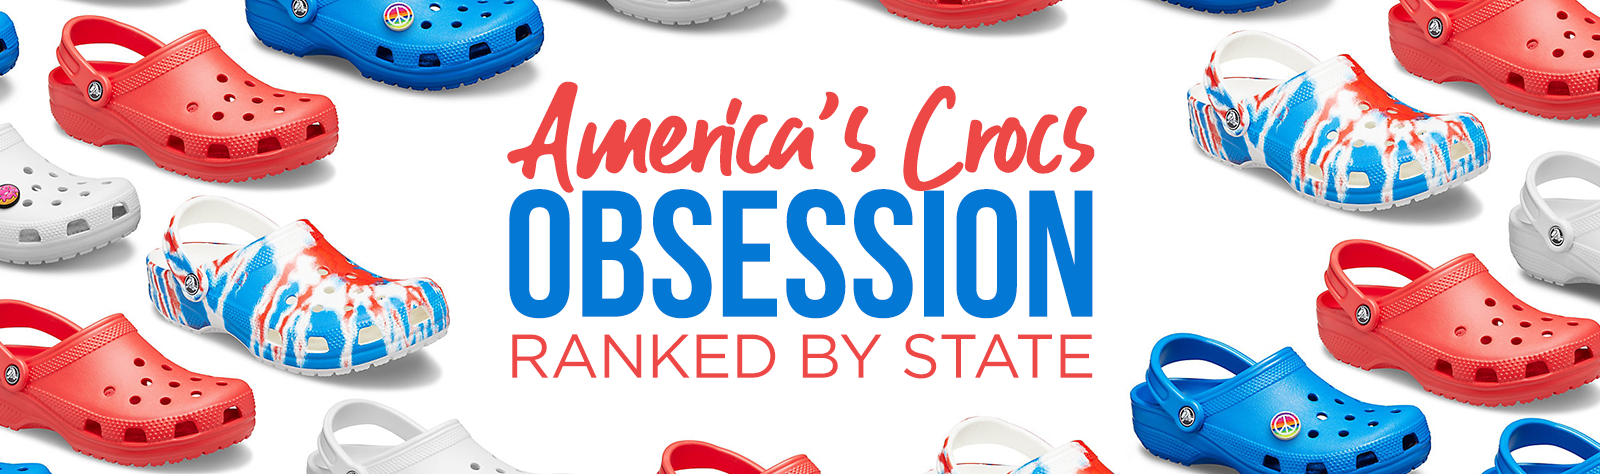 The Most Crocs-Obsessed U.S. States (Ranked)